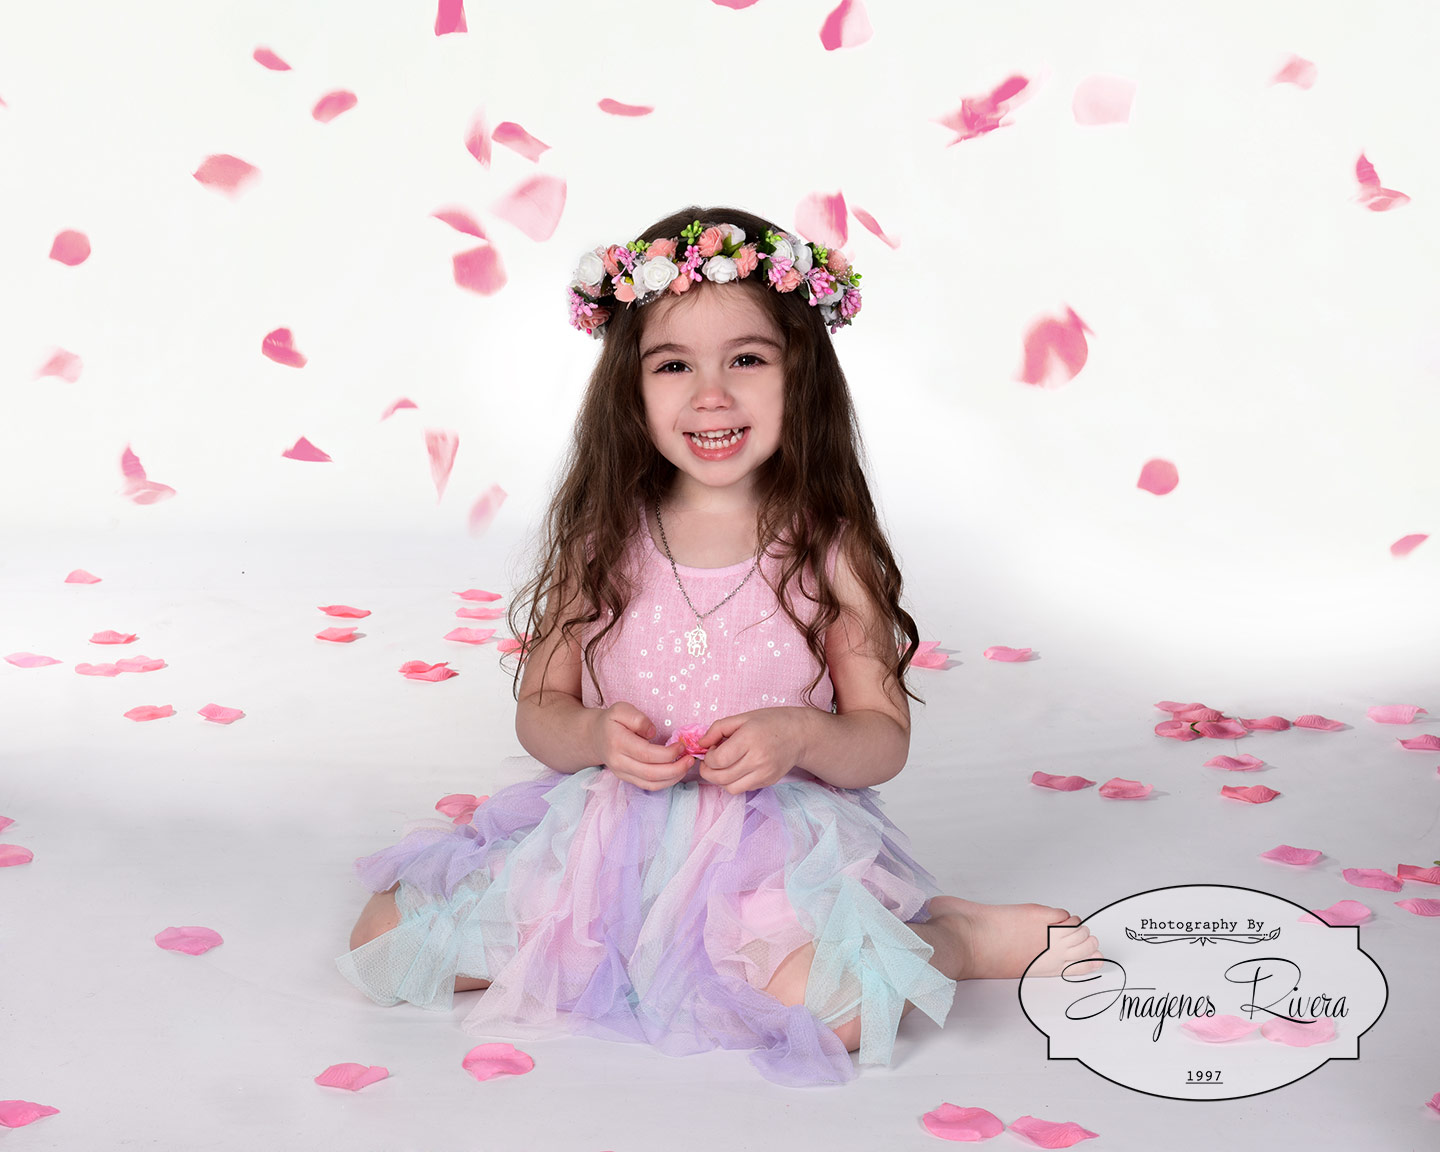 ♥ Little princess mini | Children photographer Imagenes Rivera ♥